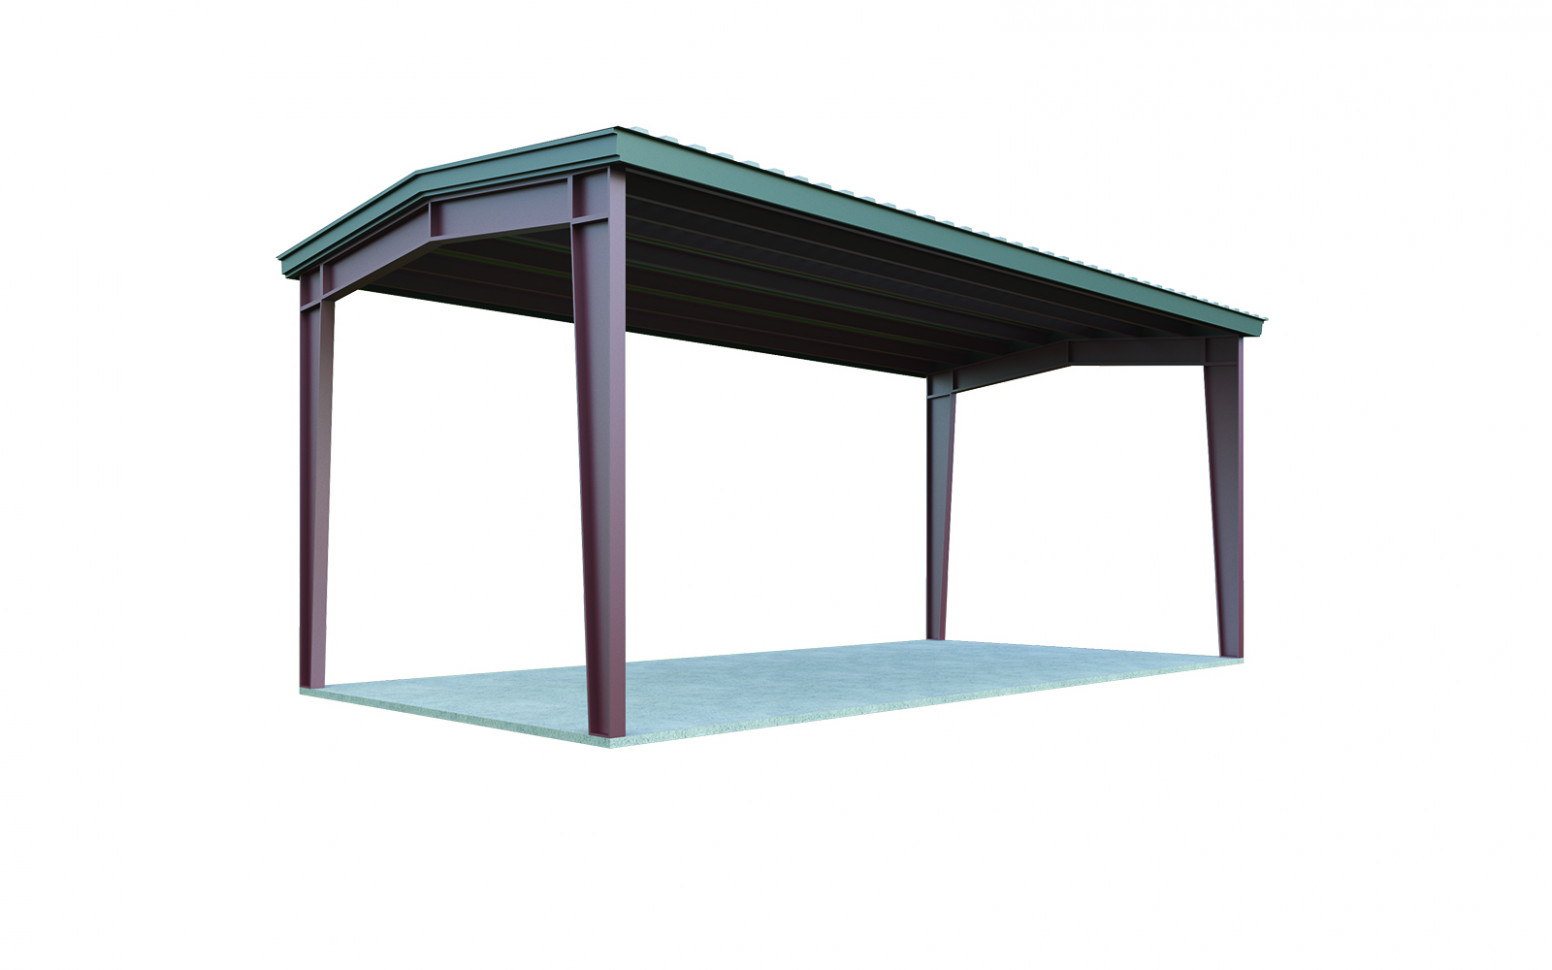 13×13 Carport: Perfect For Two Cars | General Steel Shop Carports Contemporary Buildings